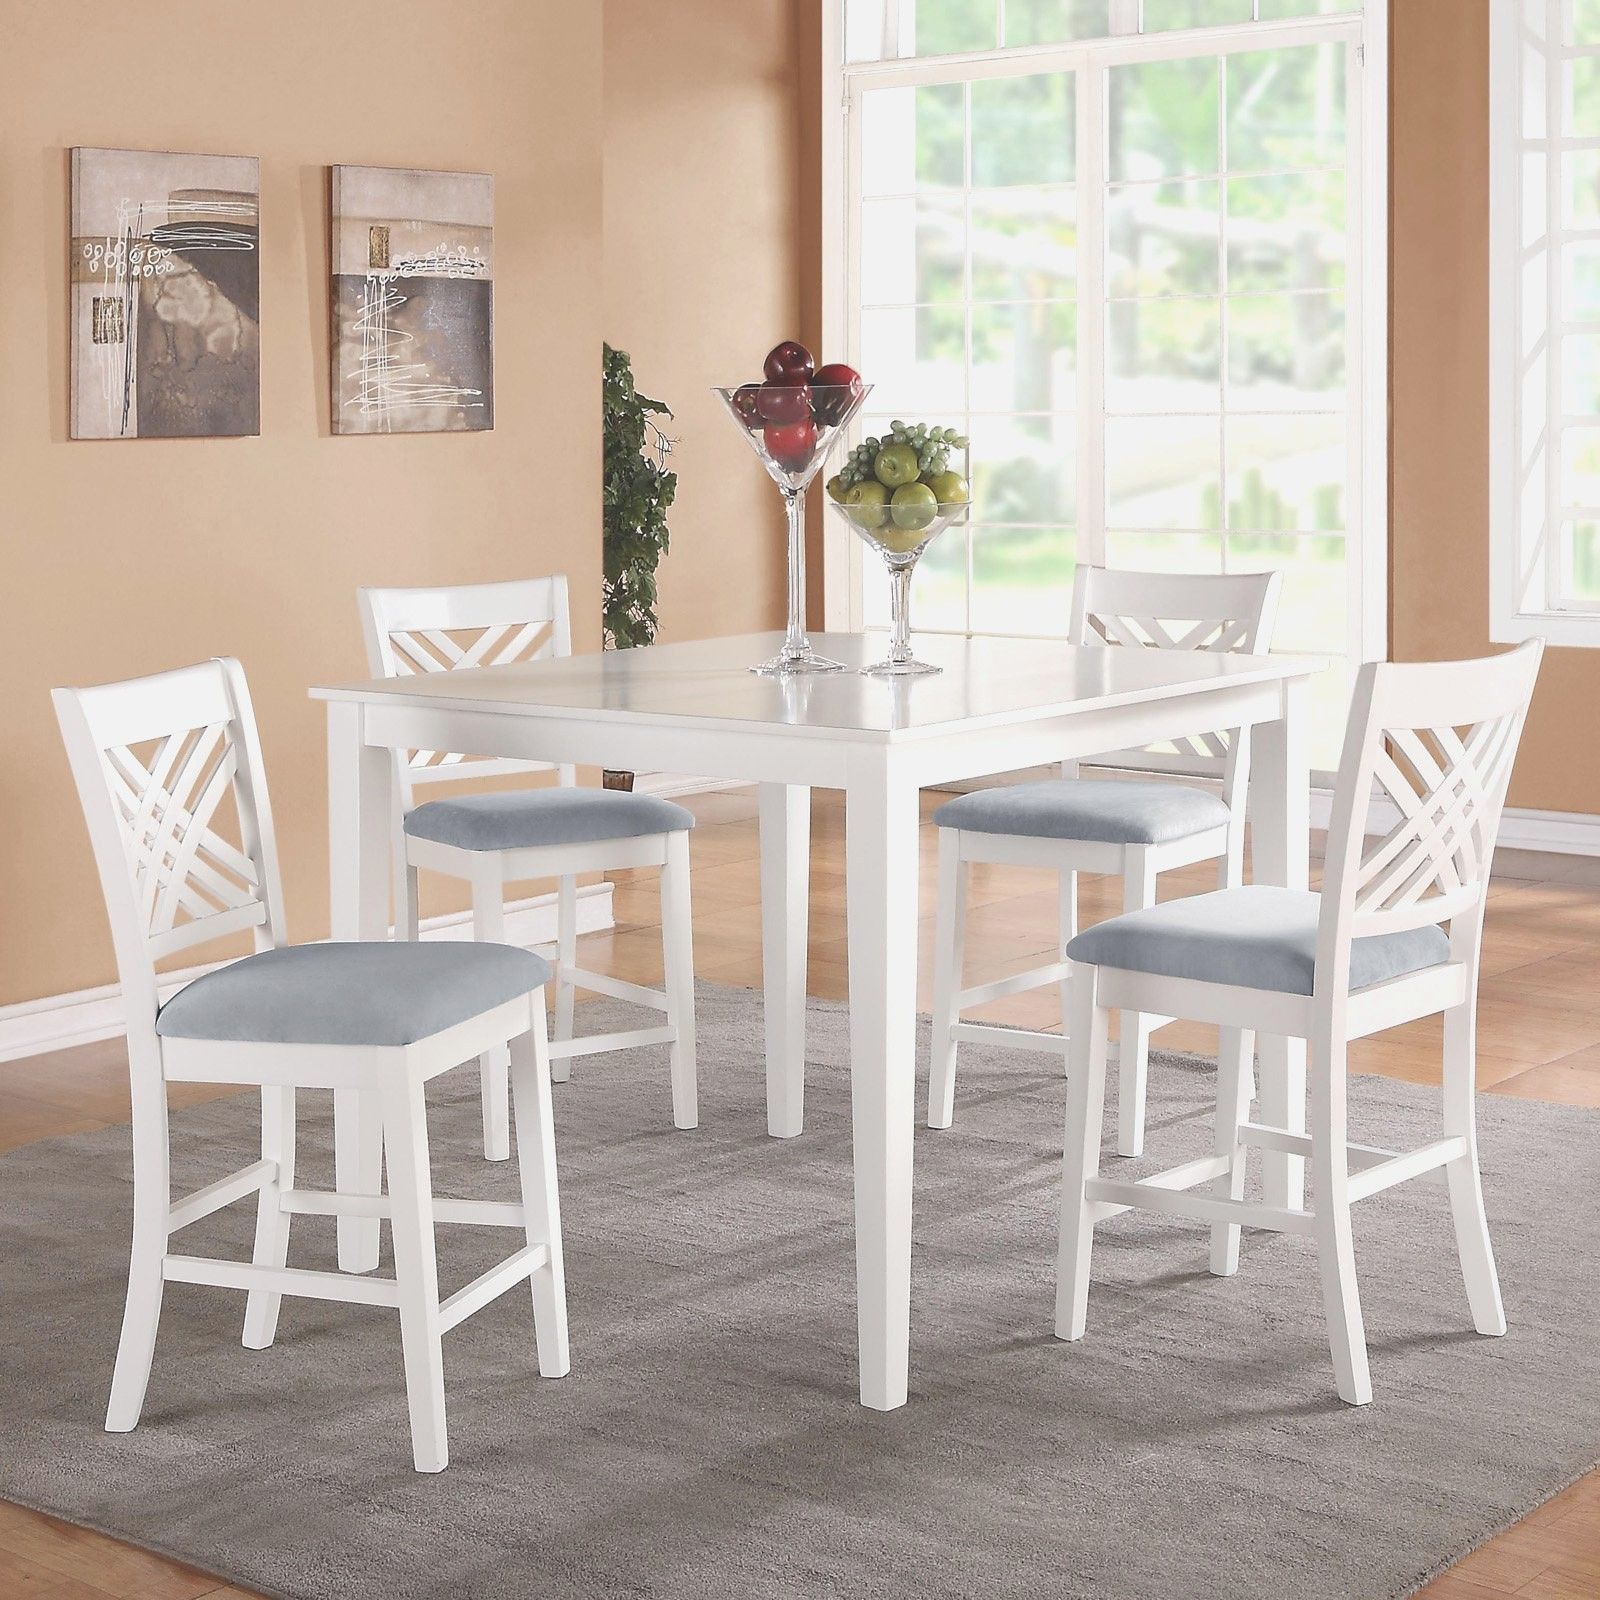 pedestal tables table modern kitchen white round gloss furniture base extending dining curva